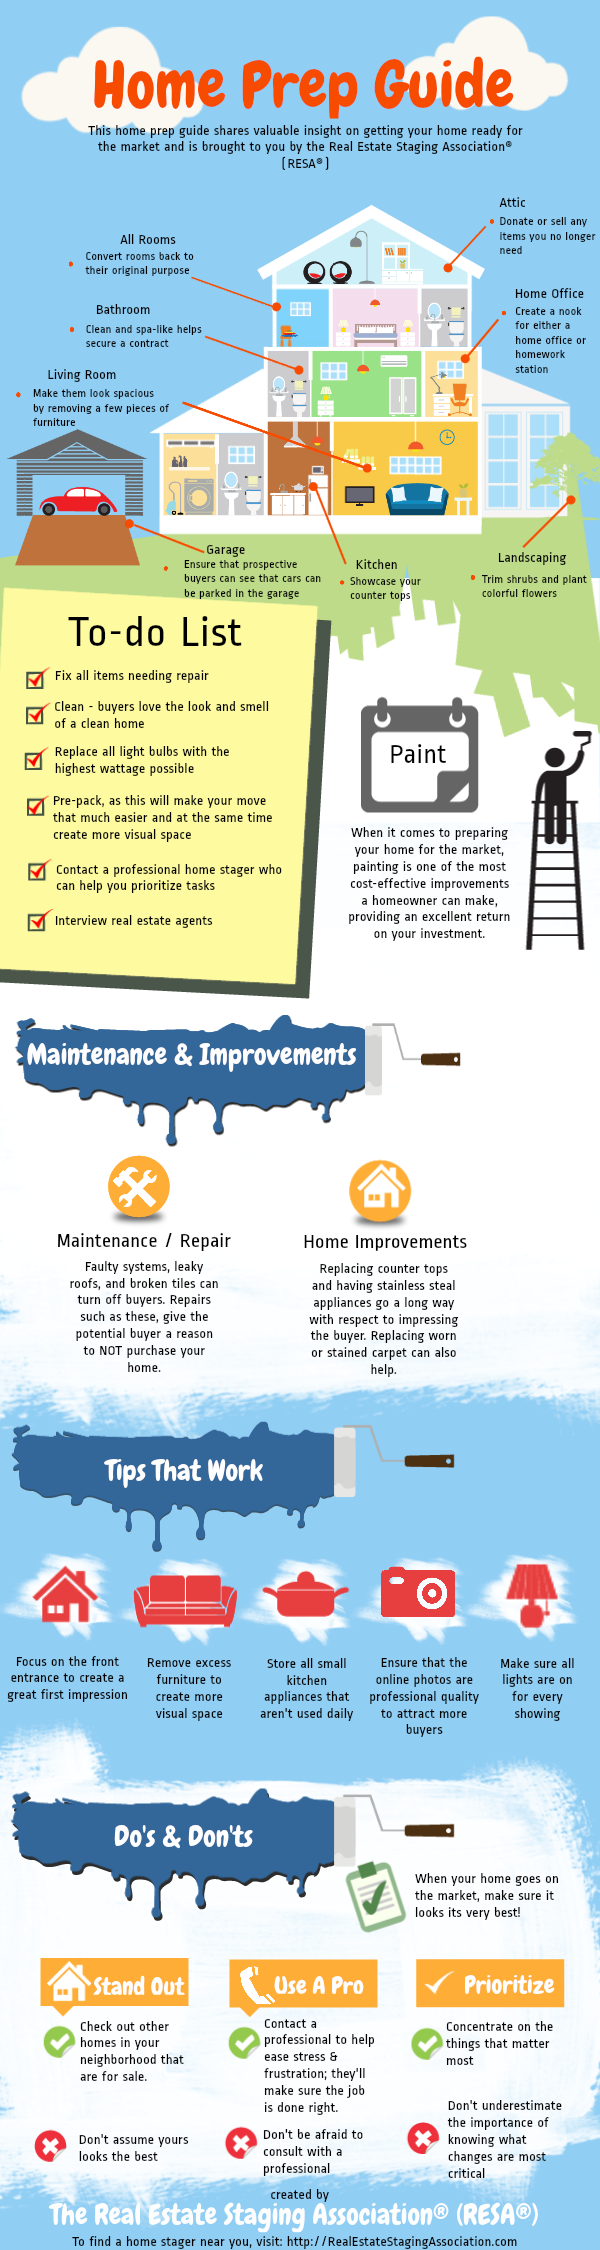 home_prep_guide_infographic_2250